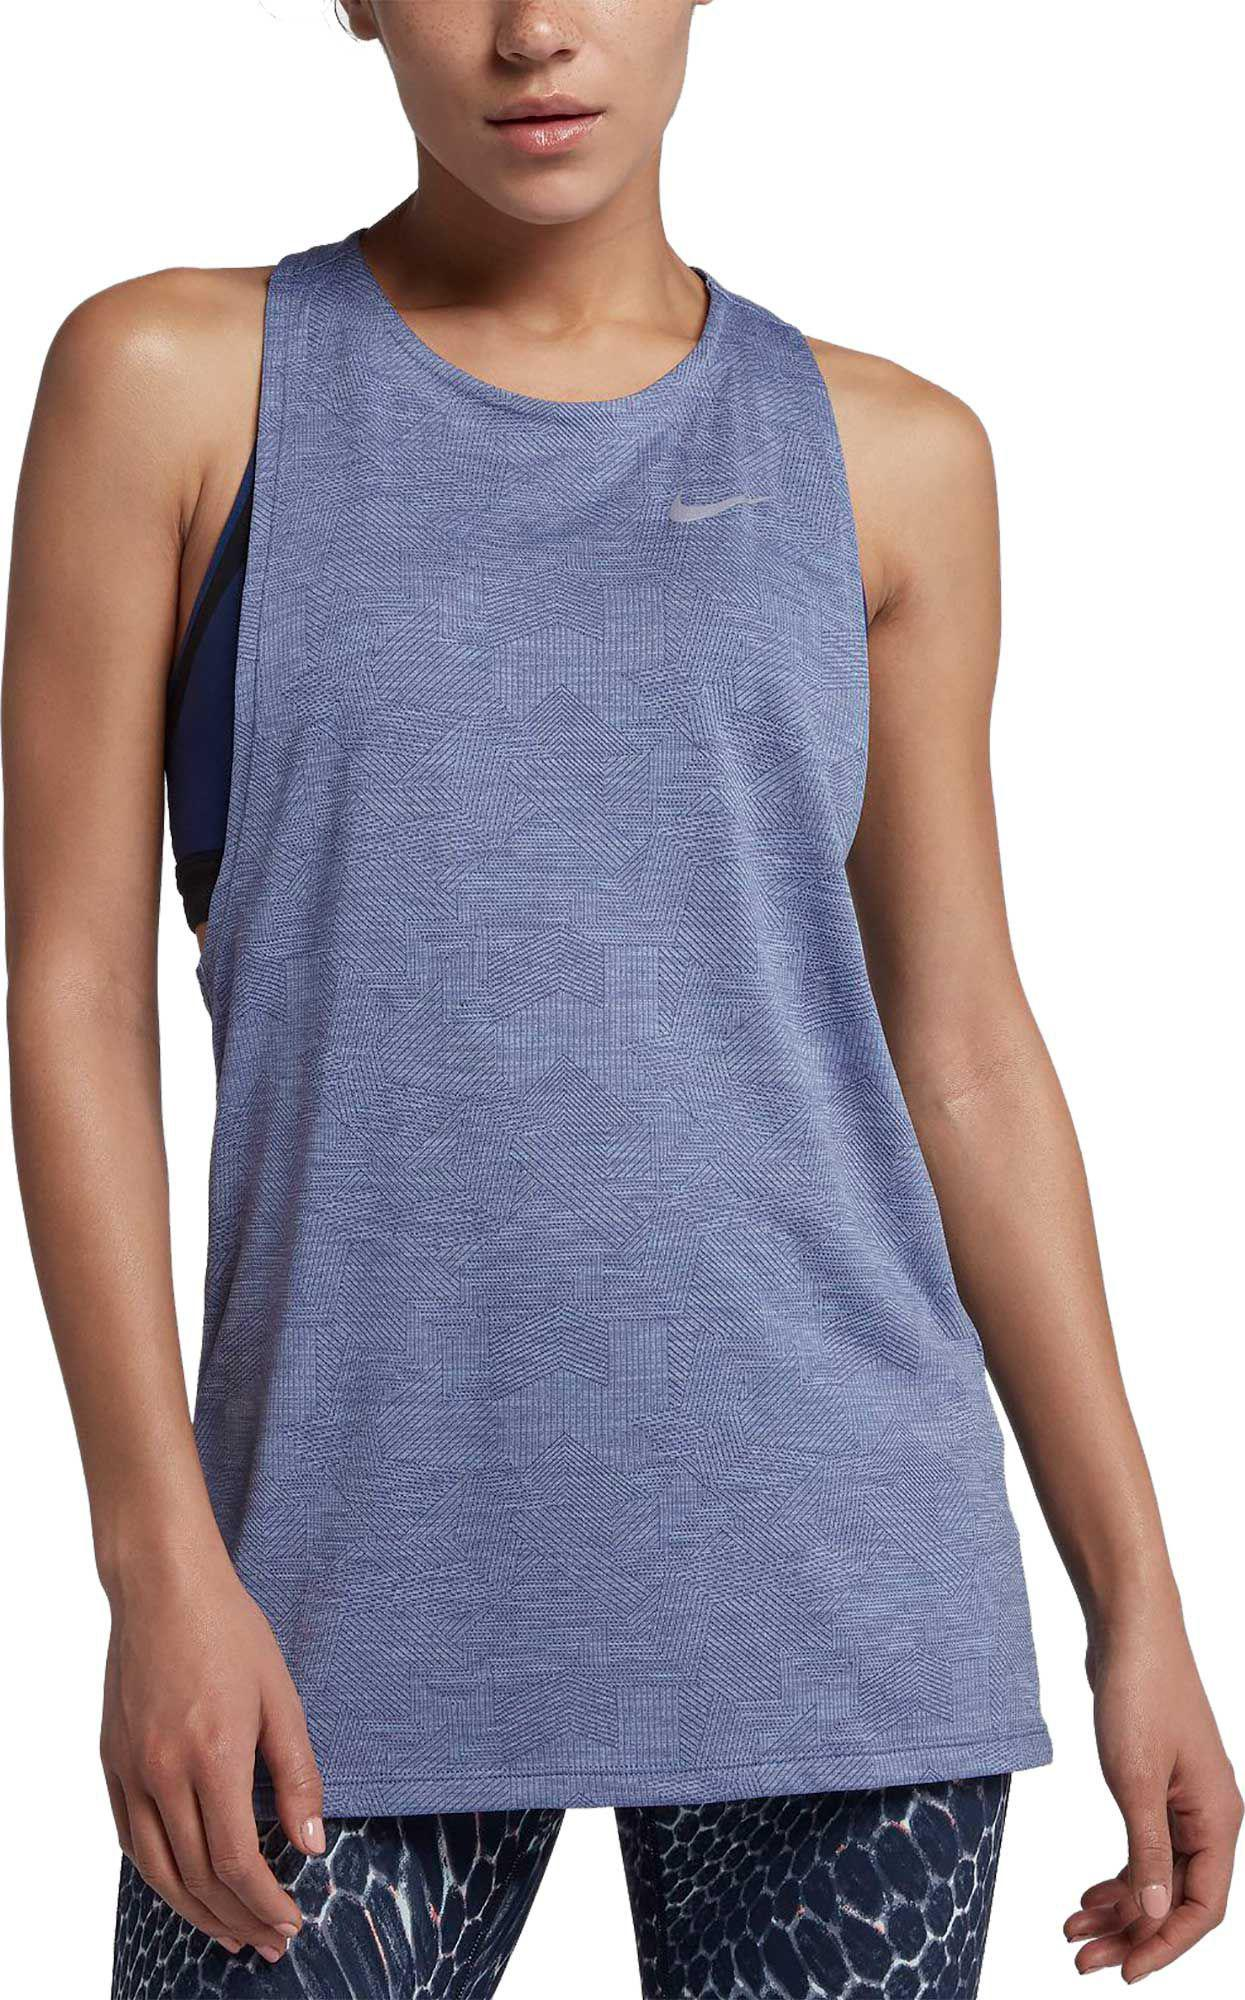 e4fae81a30413d Lyst - Nike Dry Medalist Running Tank Top in Blue